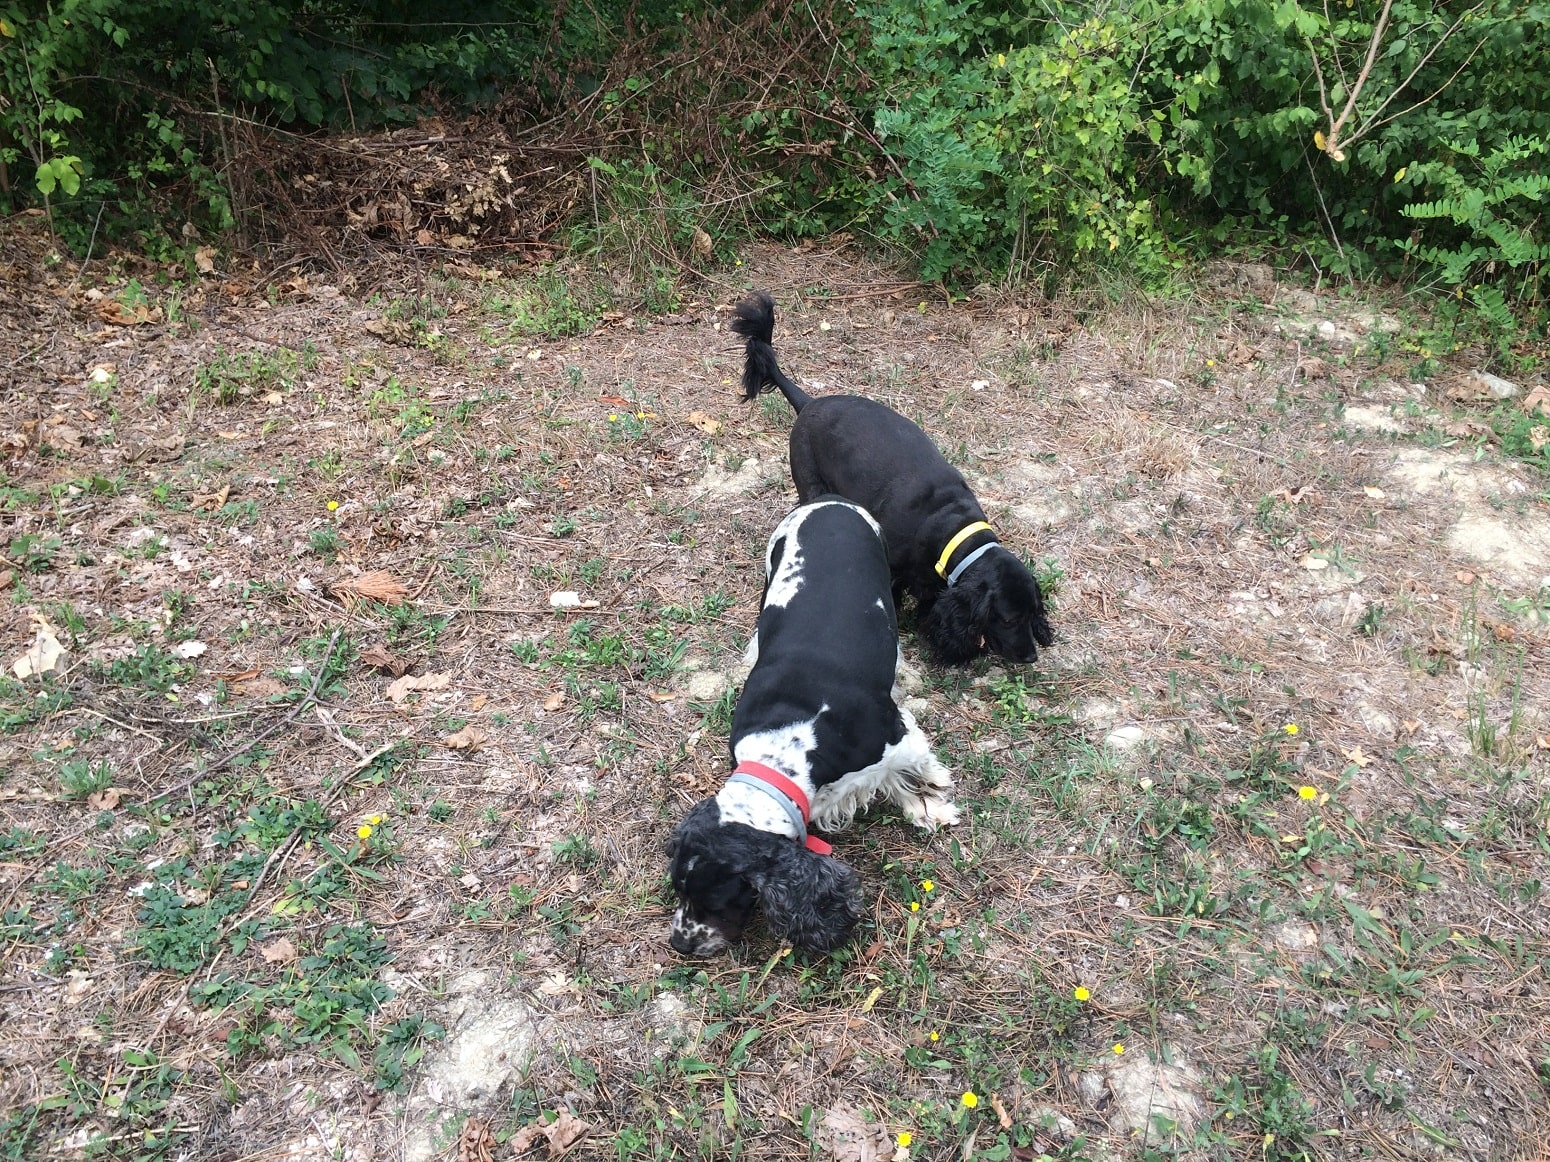 truffle-hunting-with-dogs-Umbria-min.JPG